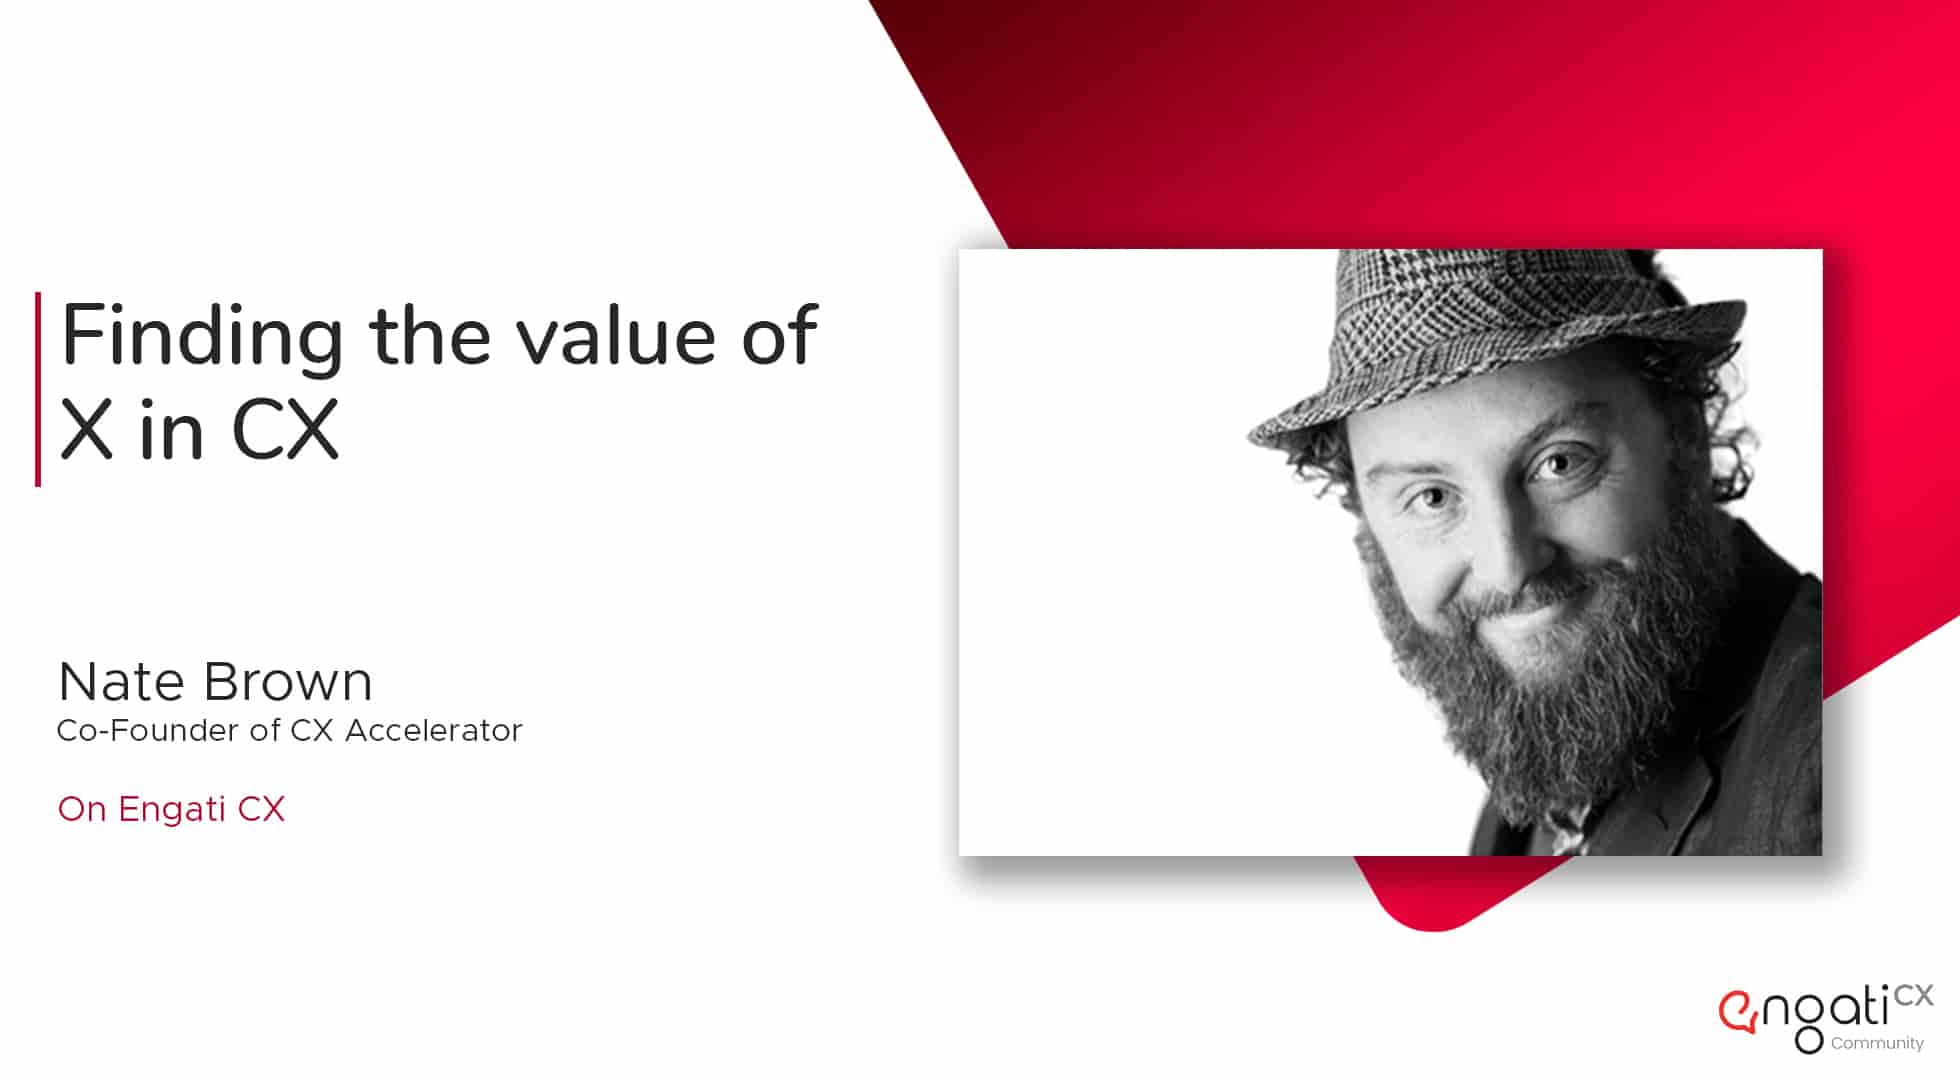 Finding the value of experience in customer experience | Nate Brown